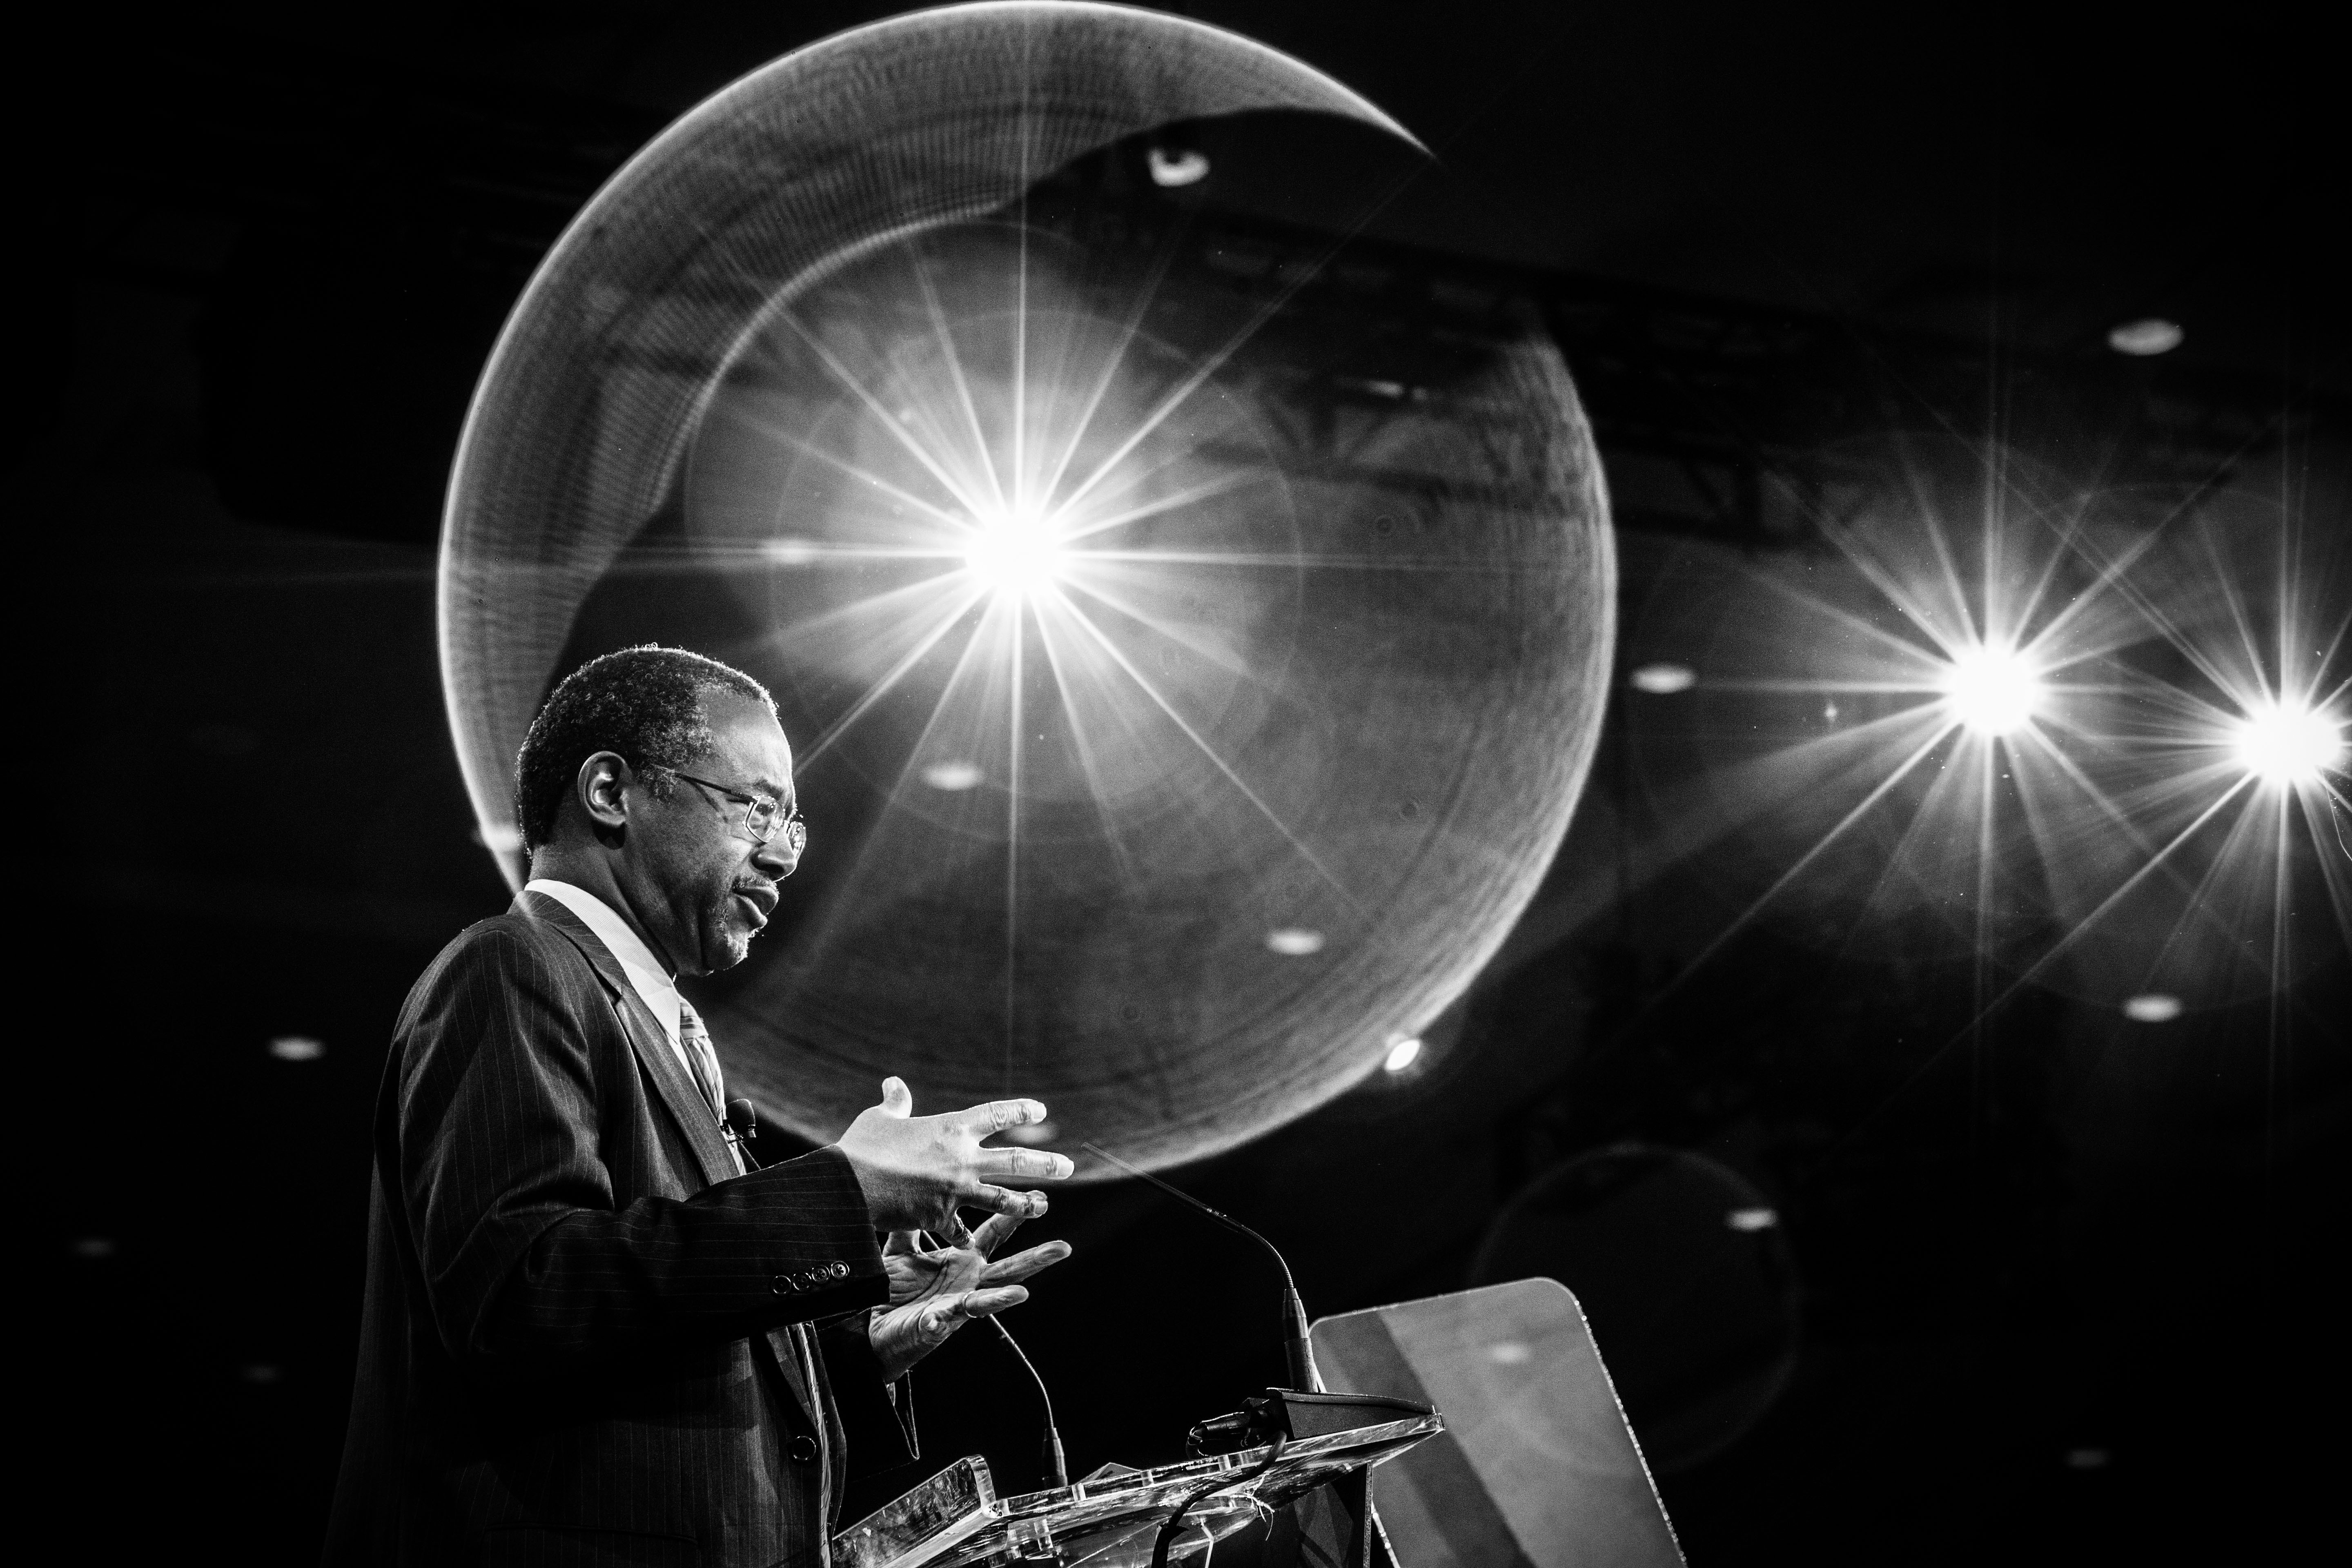 Retired neurosurgeon and Republican presidential candidate Ben Carson spoke at the Conservative Political Action Conference in National Harbor, Maryland in 2015.